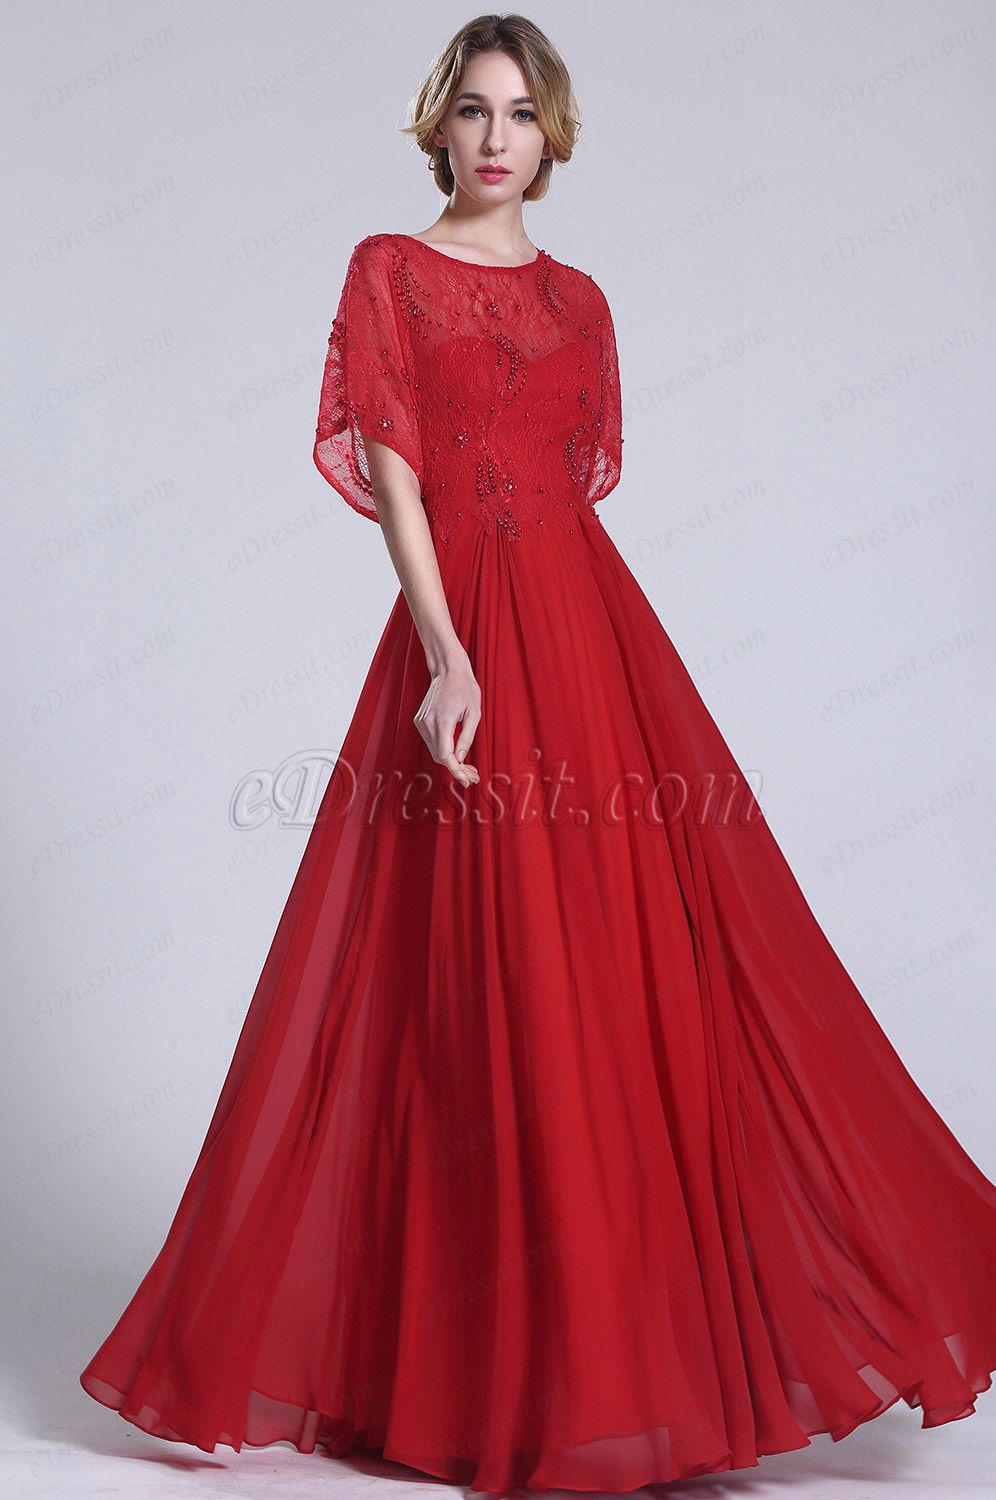 Gorgeous red evening gown with illusion bodice c edressit